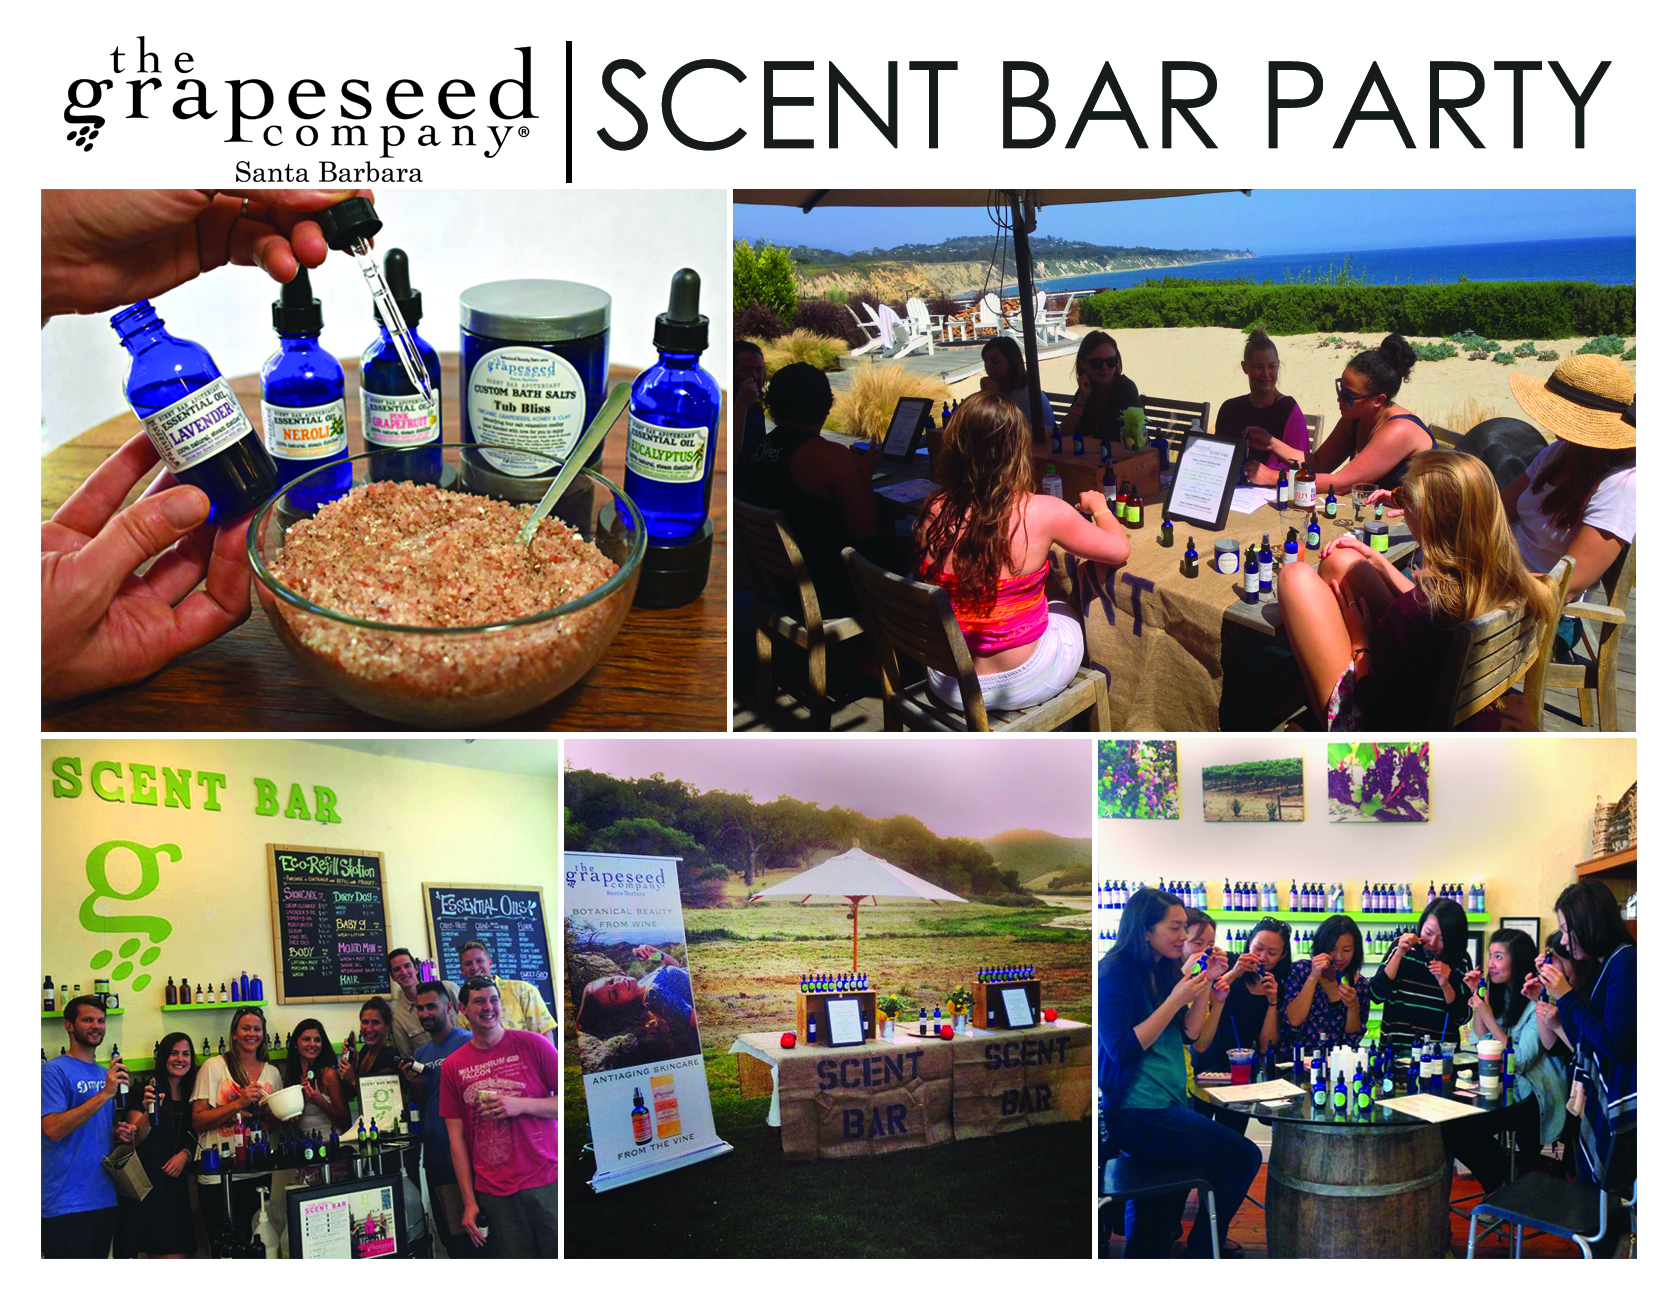 scent-bar-card-2018-front.jpg